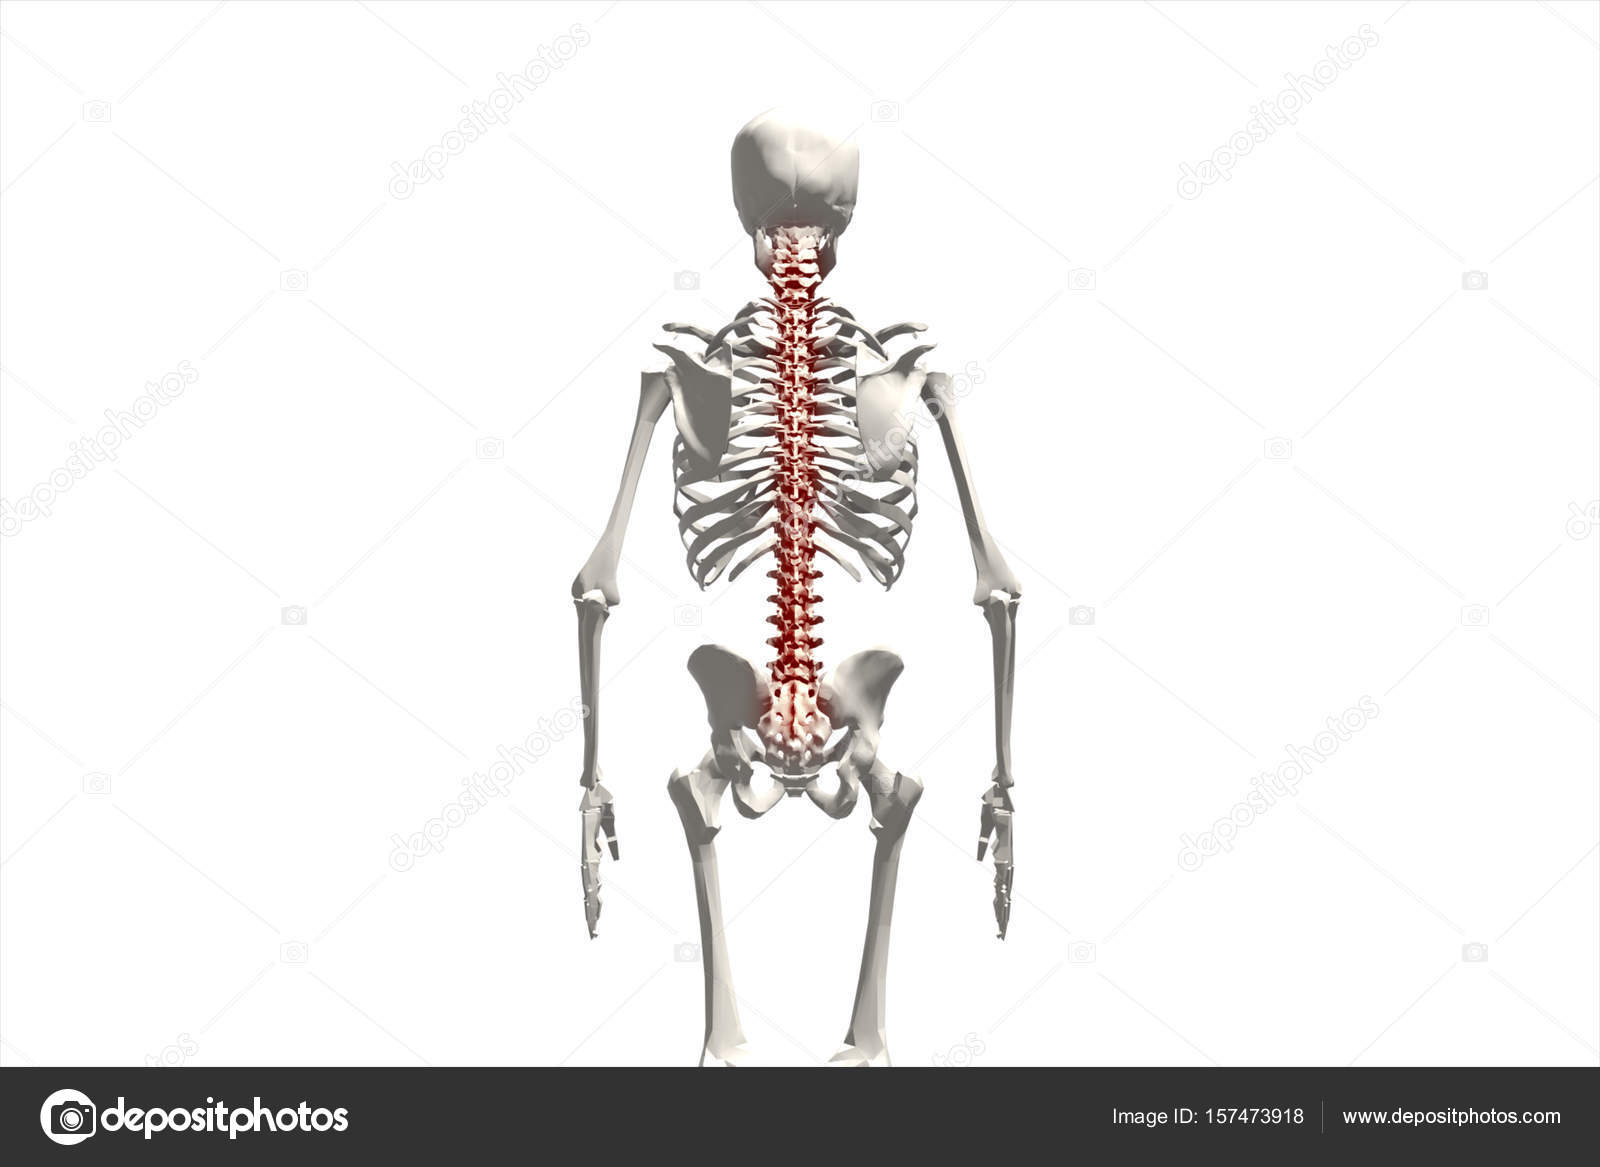 Human skeleton, illustration of the spine, back pain isolated on ...